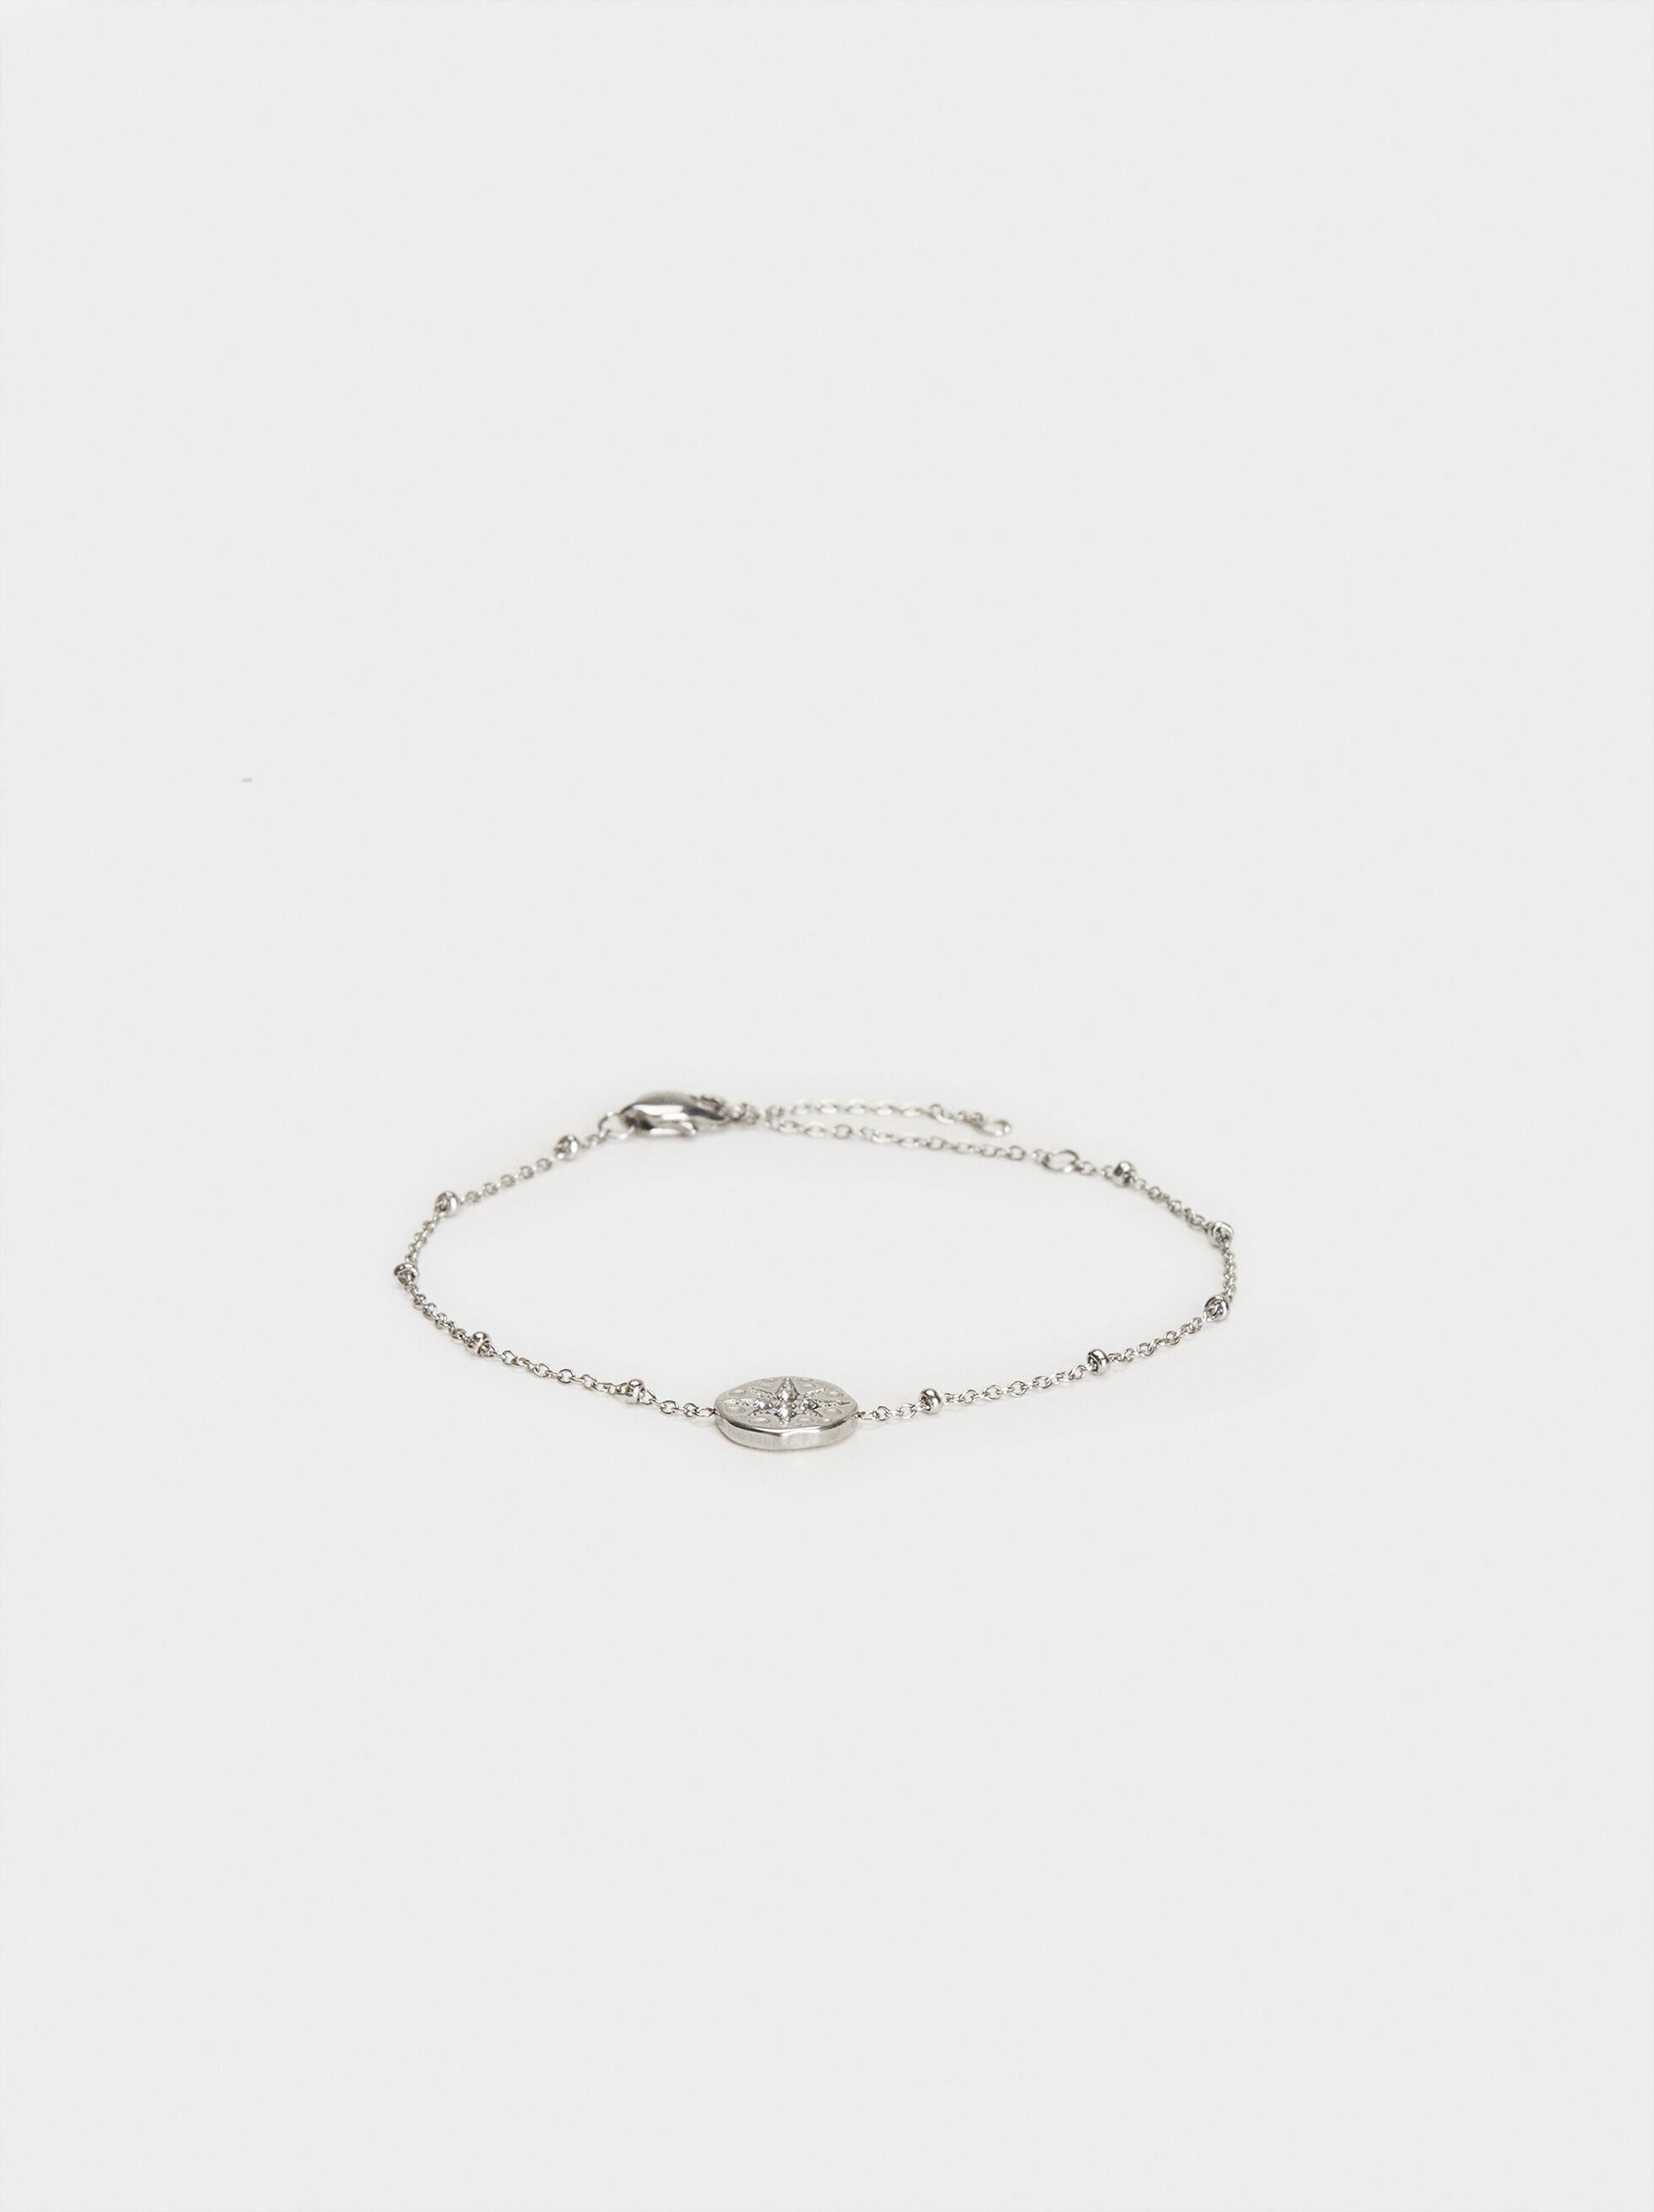 Stainless Steel Bracelet With Medal Charm, Silver, hi-res